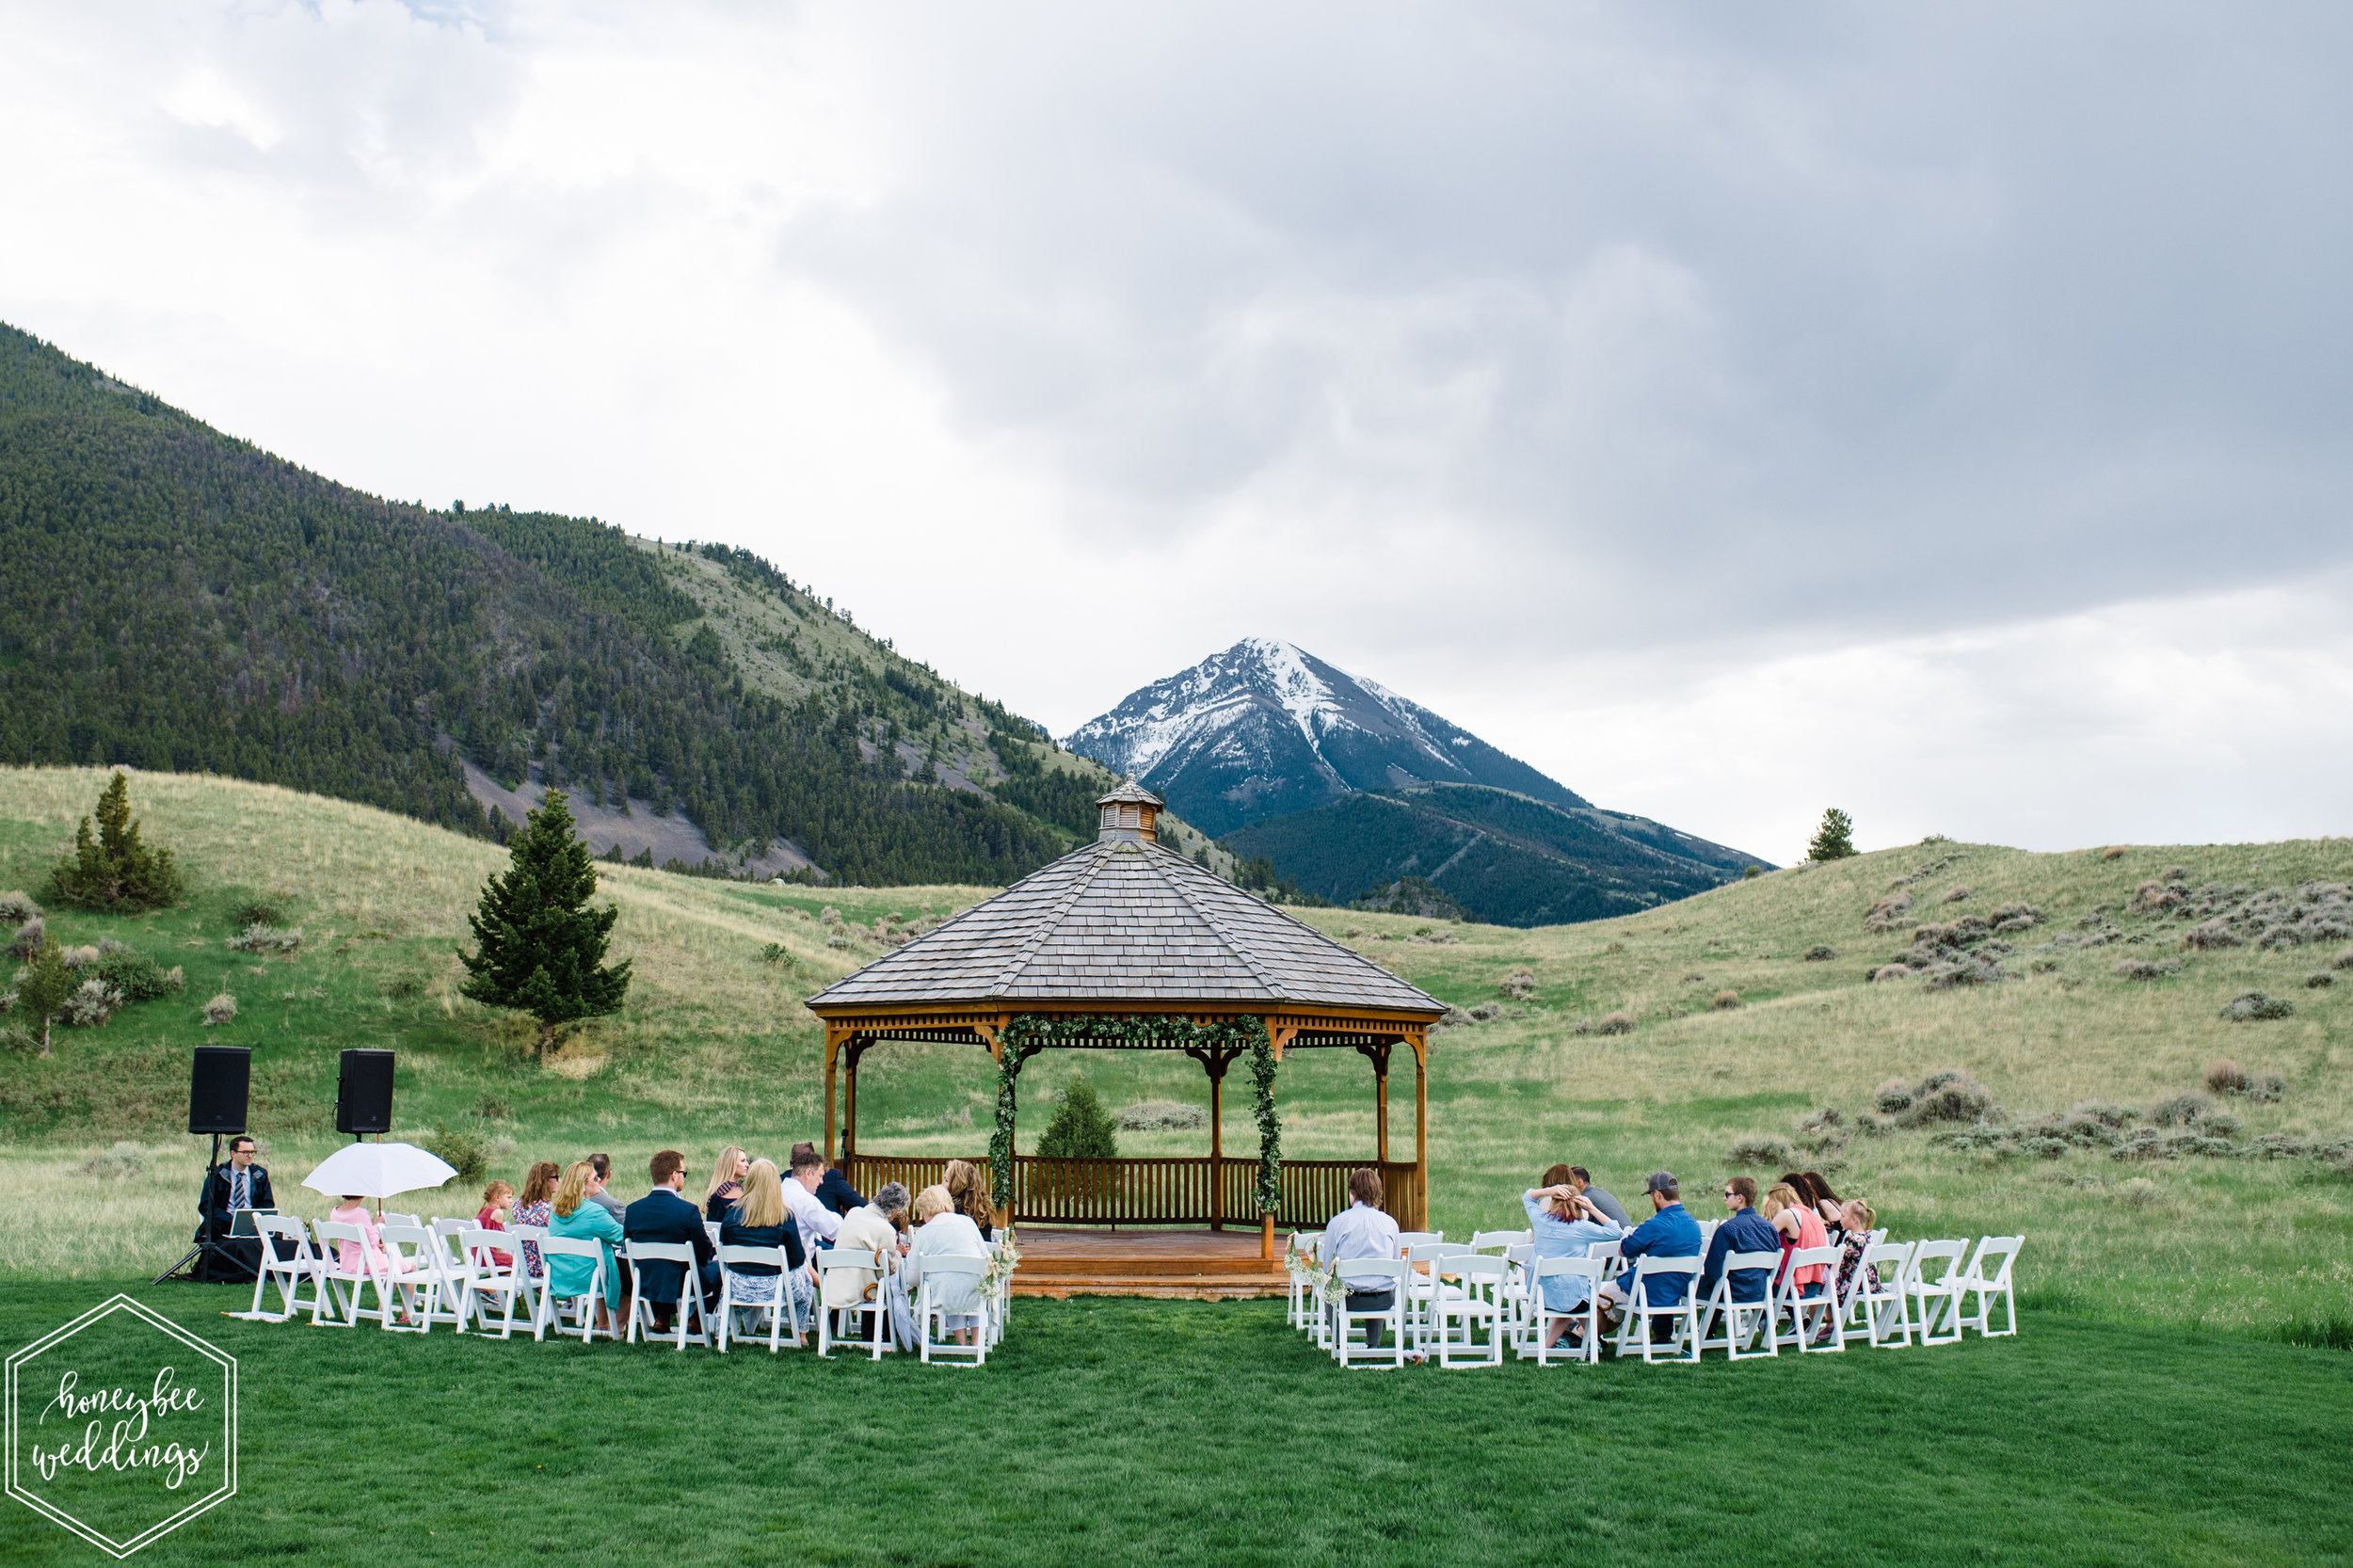 003Montana wedding photographer videographer_Chico hot springs wedding_Honeybee Weddings_Claudia & Bill_June 03, 2019-83.jpg